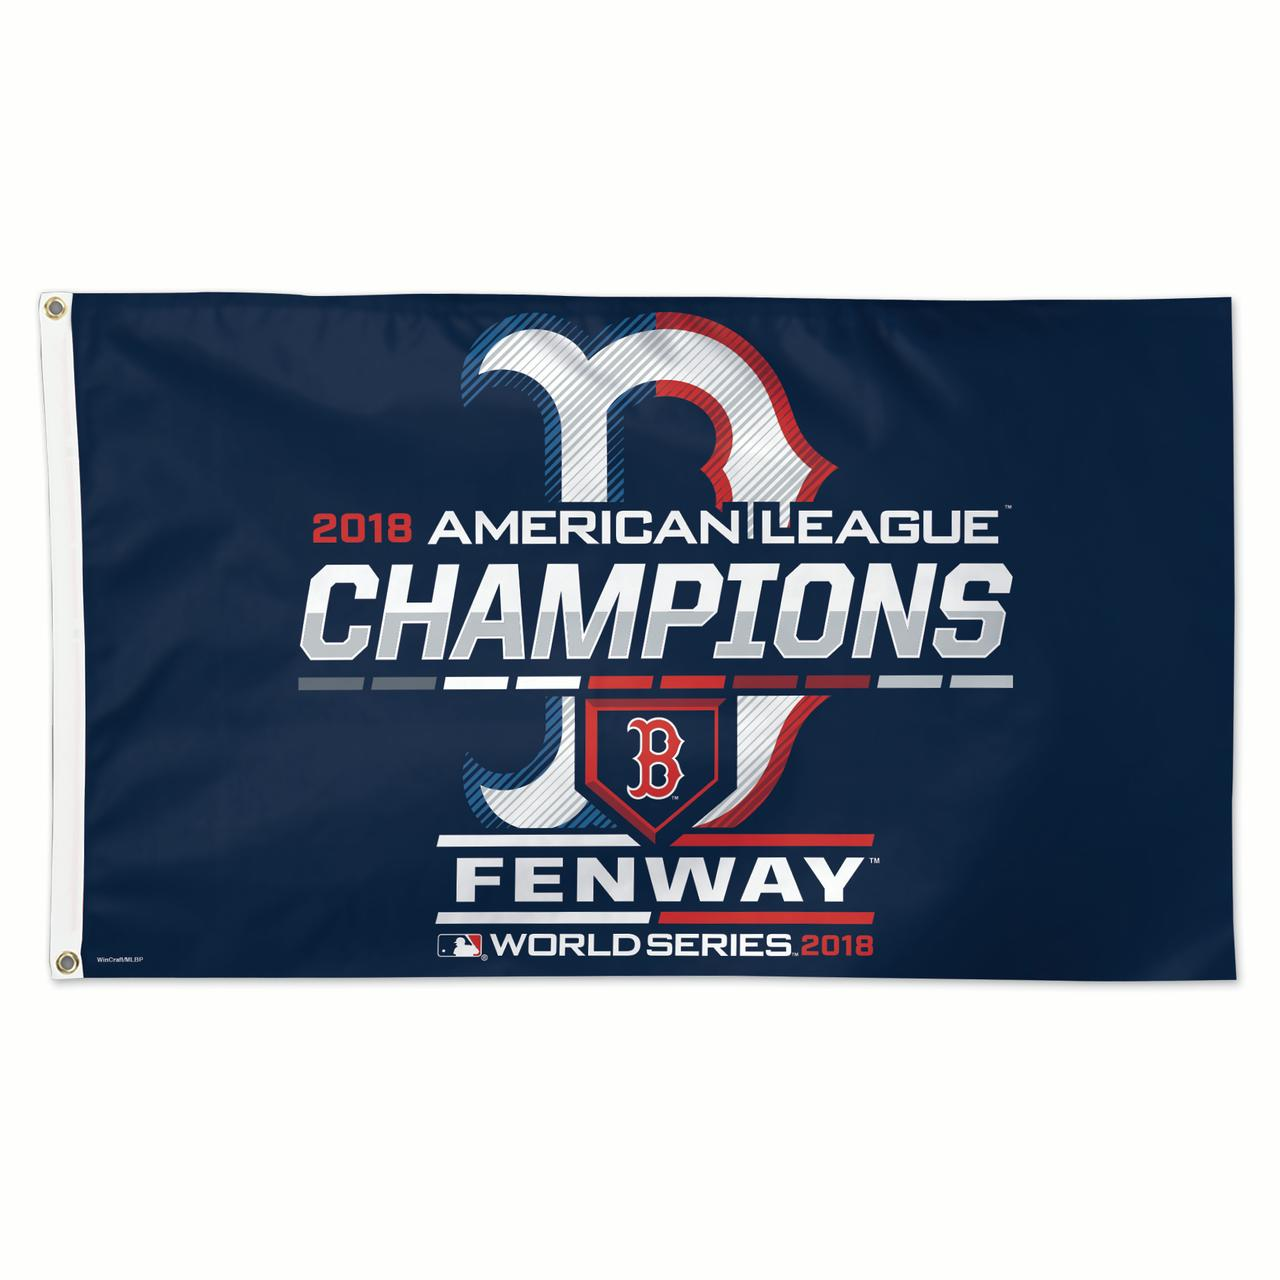 Boston Red Sox WinCraft 2018 American League Champions On-Field Celebration 1-Sided 3' x 5' Deluxe Flag - No Size